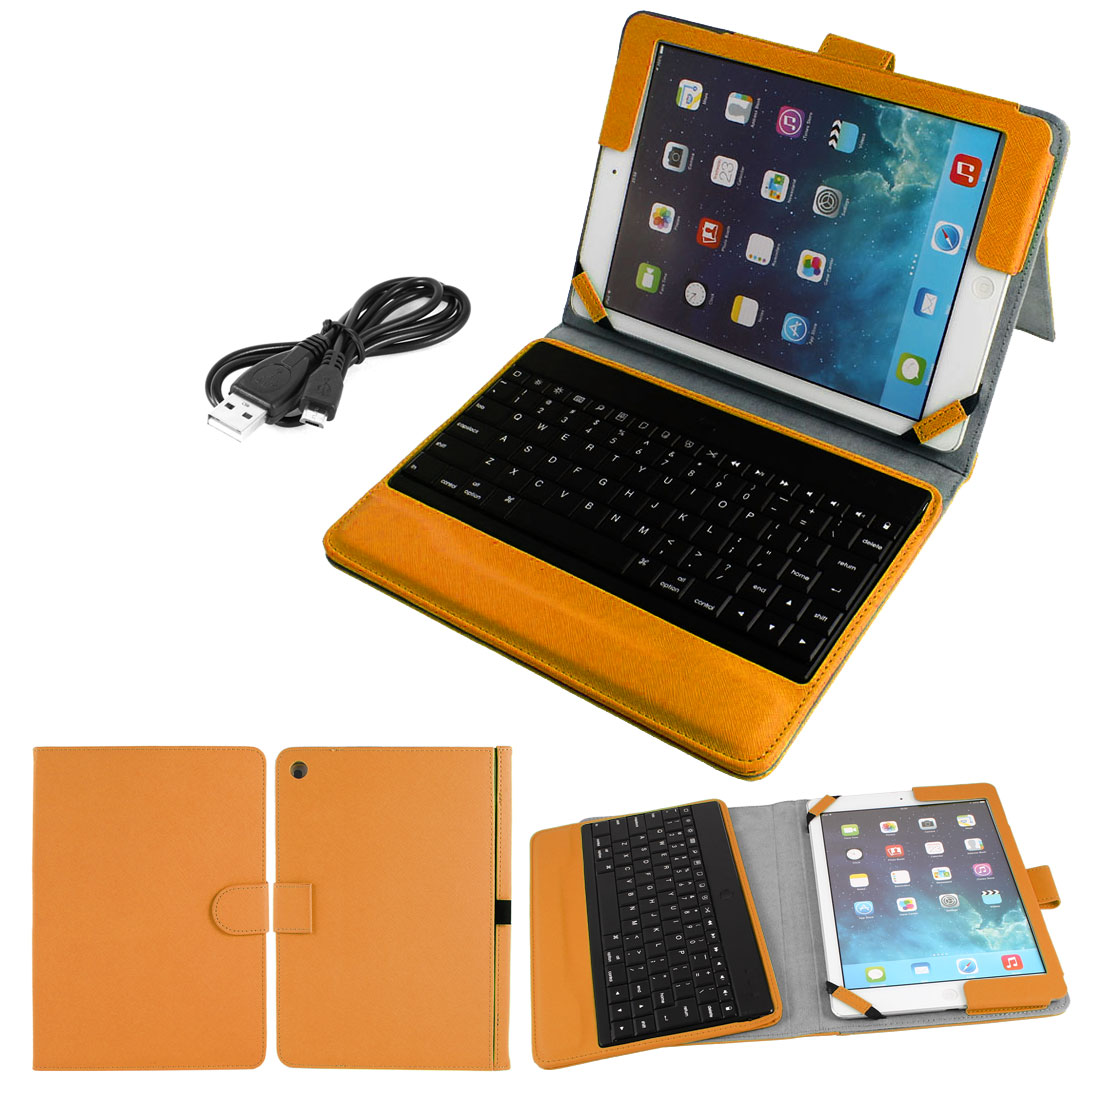 Wireless bluetooth Keyboard Foldable PU Leather Stand Case Orange for iPad 2 3 4